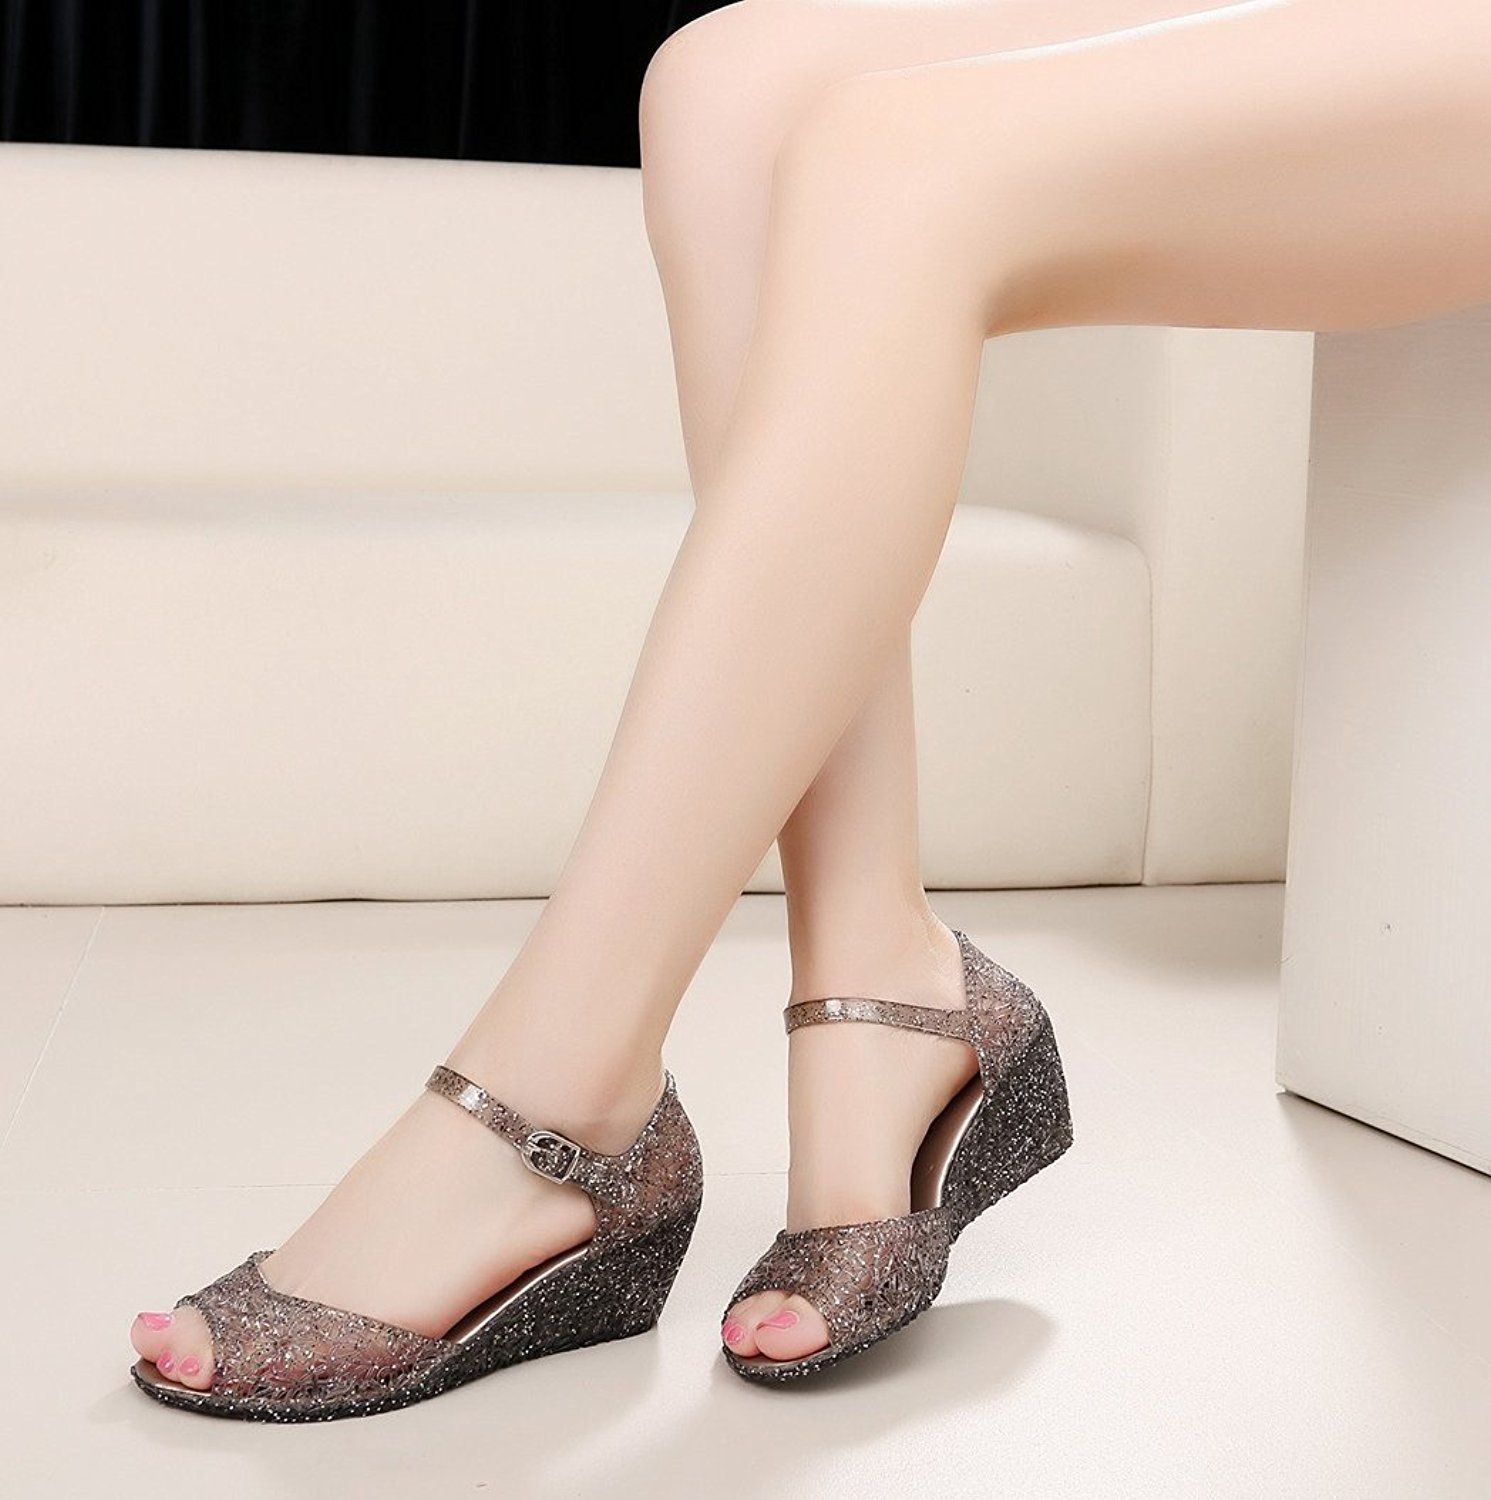 889fa1ce0fb3 AlwaysU Womens Ladies Wedge Sandals Peep Toe Ankle Strap Low Heel Summer  Glitter Jelly Shoes Platform   Click image to review more details.